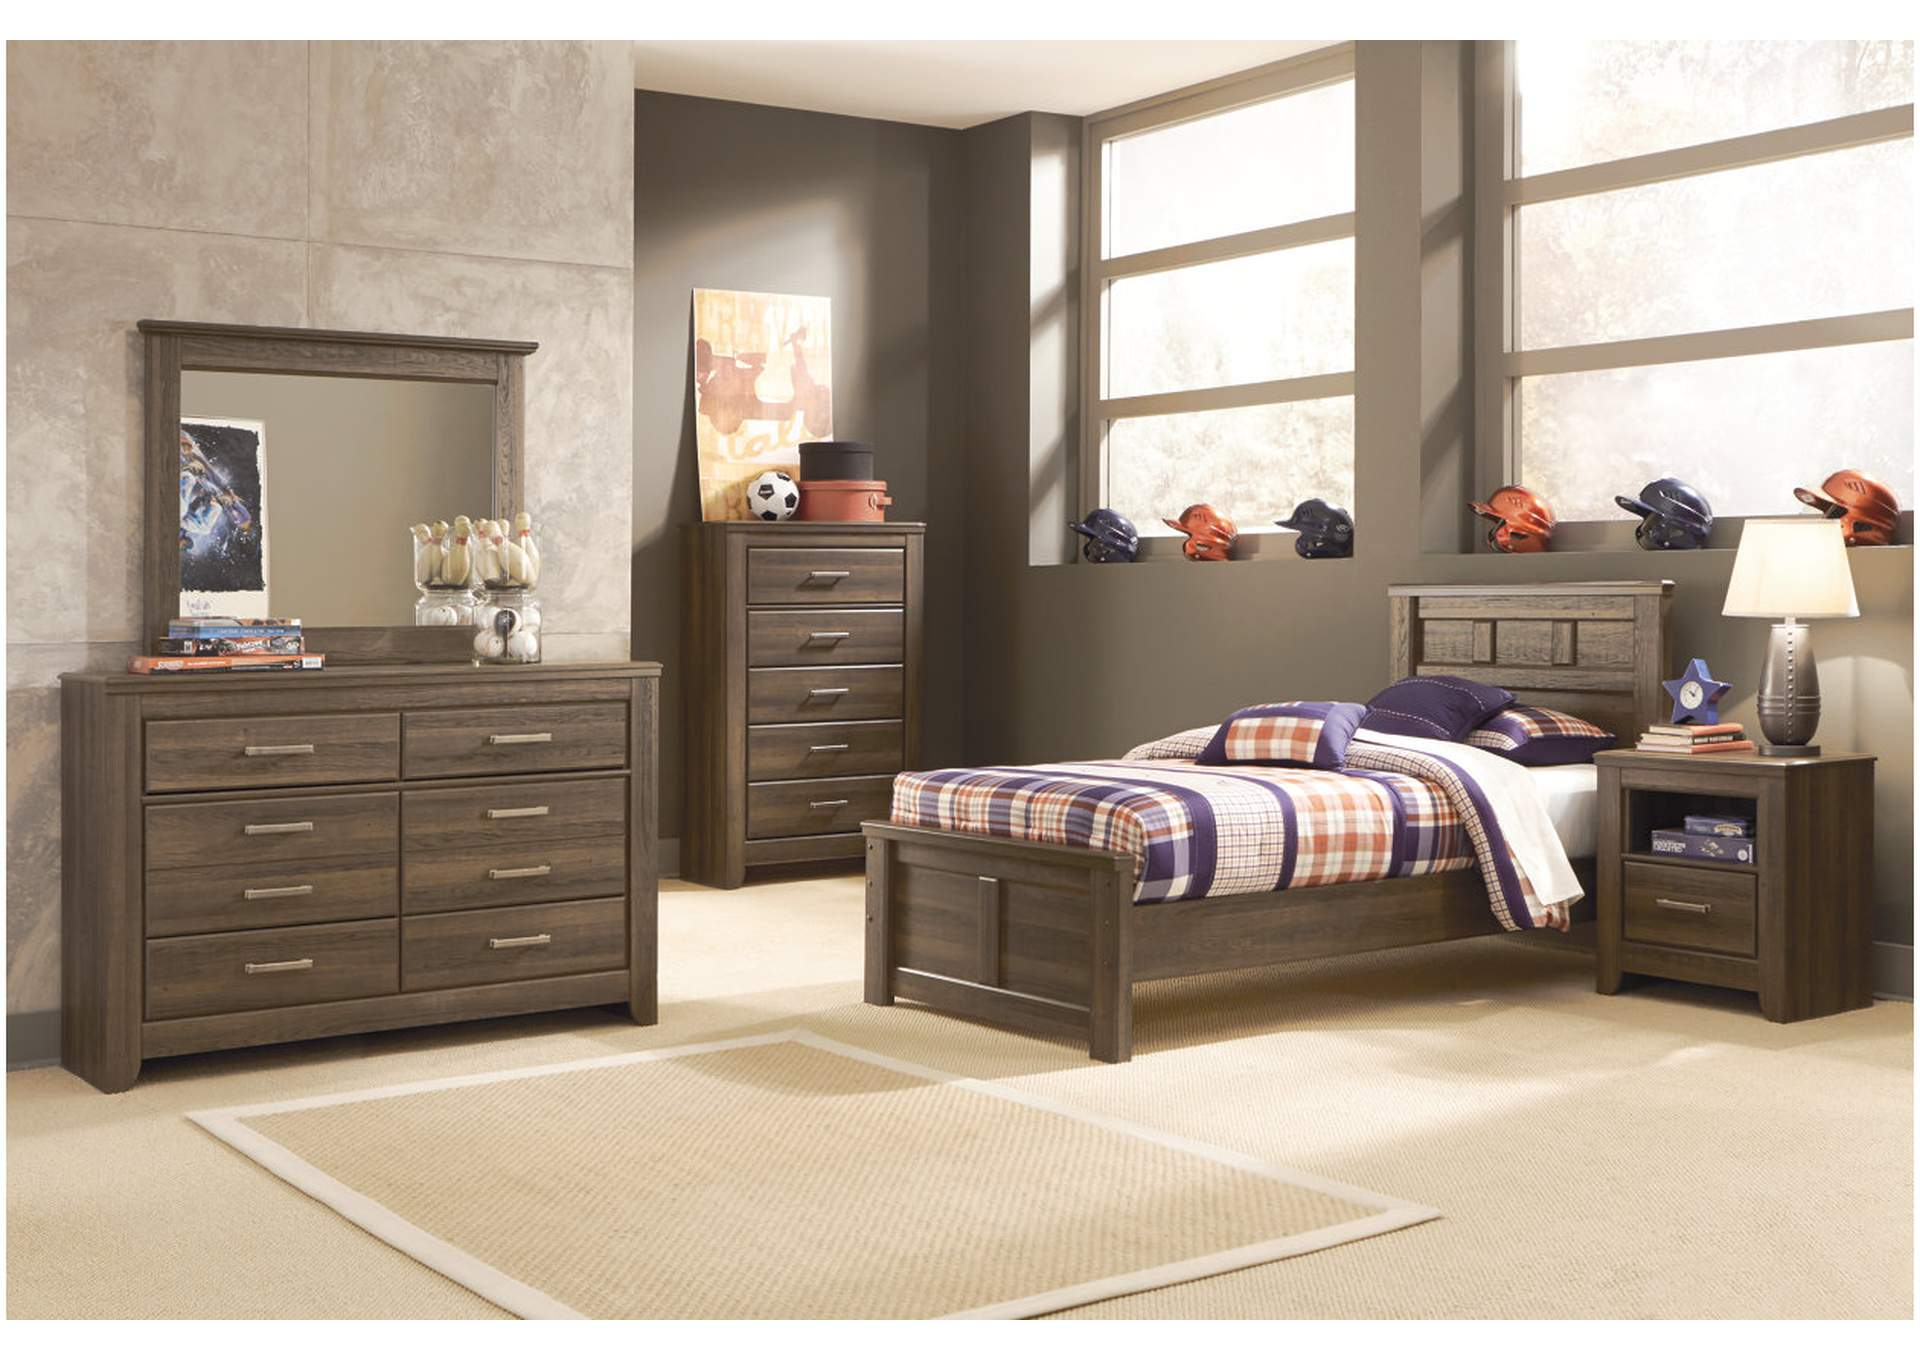 Juararo Twin Panel Bed w/Dresser, Mirror & Drawer Chest,Signature Design By Ashley